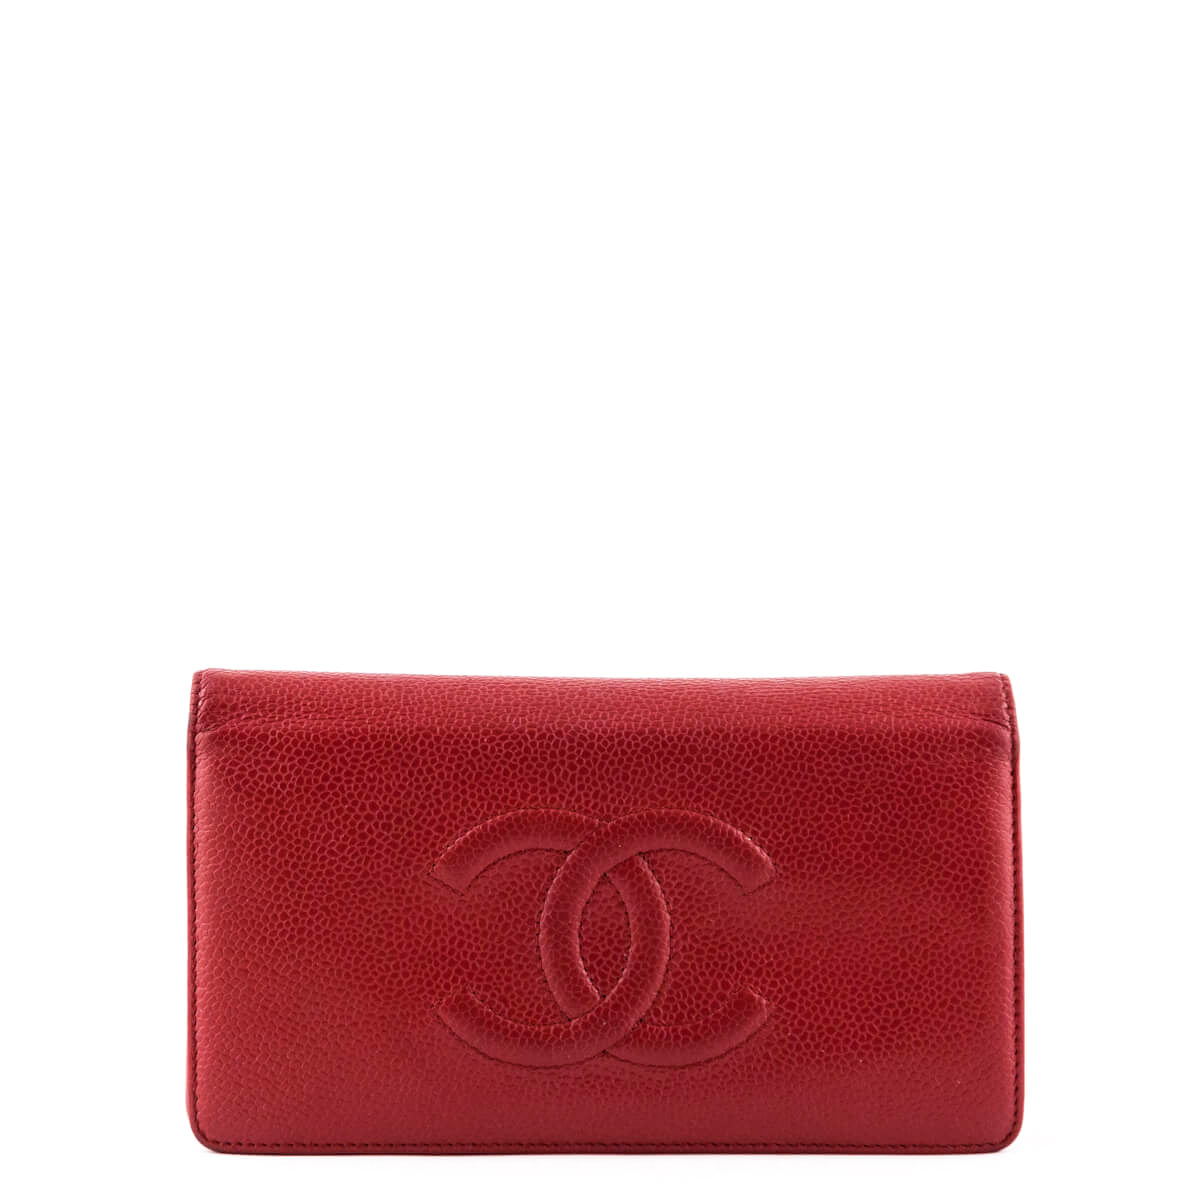 682584a217c4f7 Chanel Red Caviar Timeless CC Yen Wallet - LOVE that BAG - Preowned  Authentic Designer Handbags ...